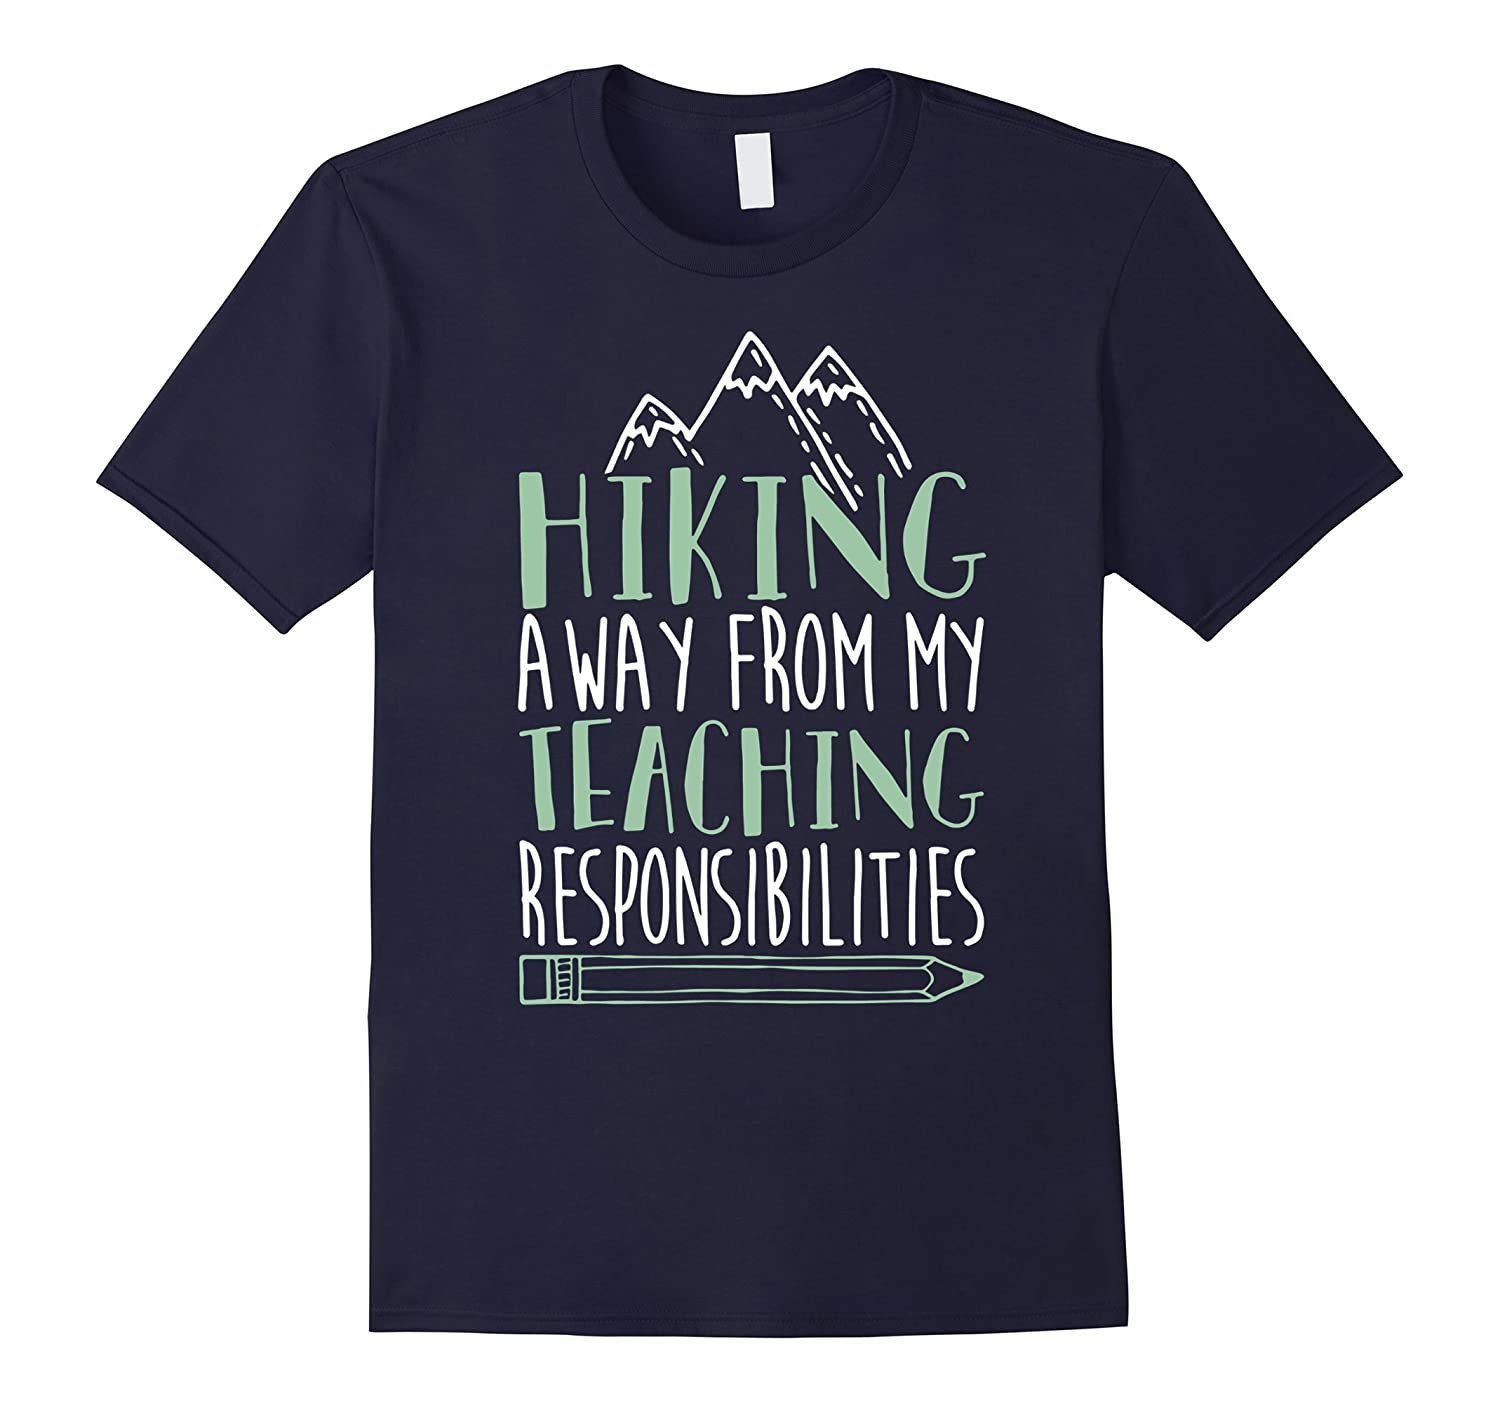 Hiking away from my teaching responsibilities t-shirts-Vaci